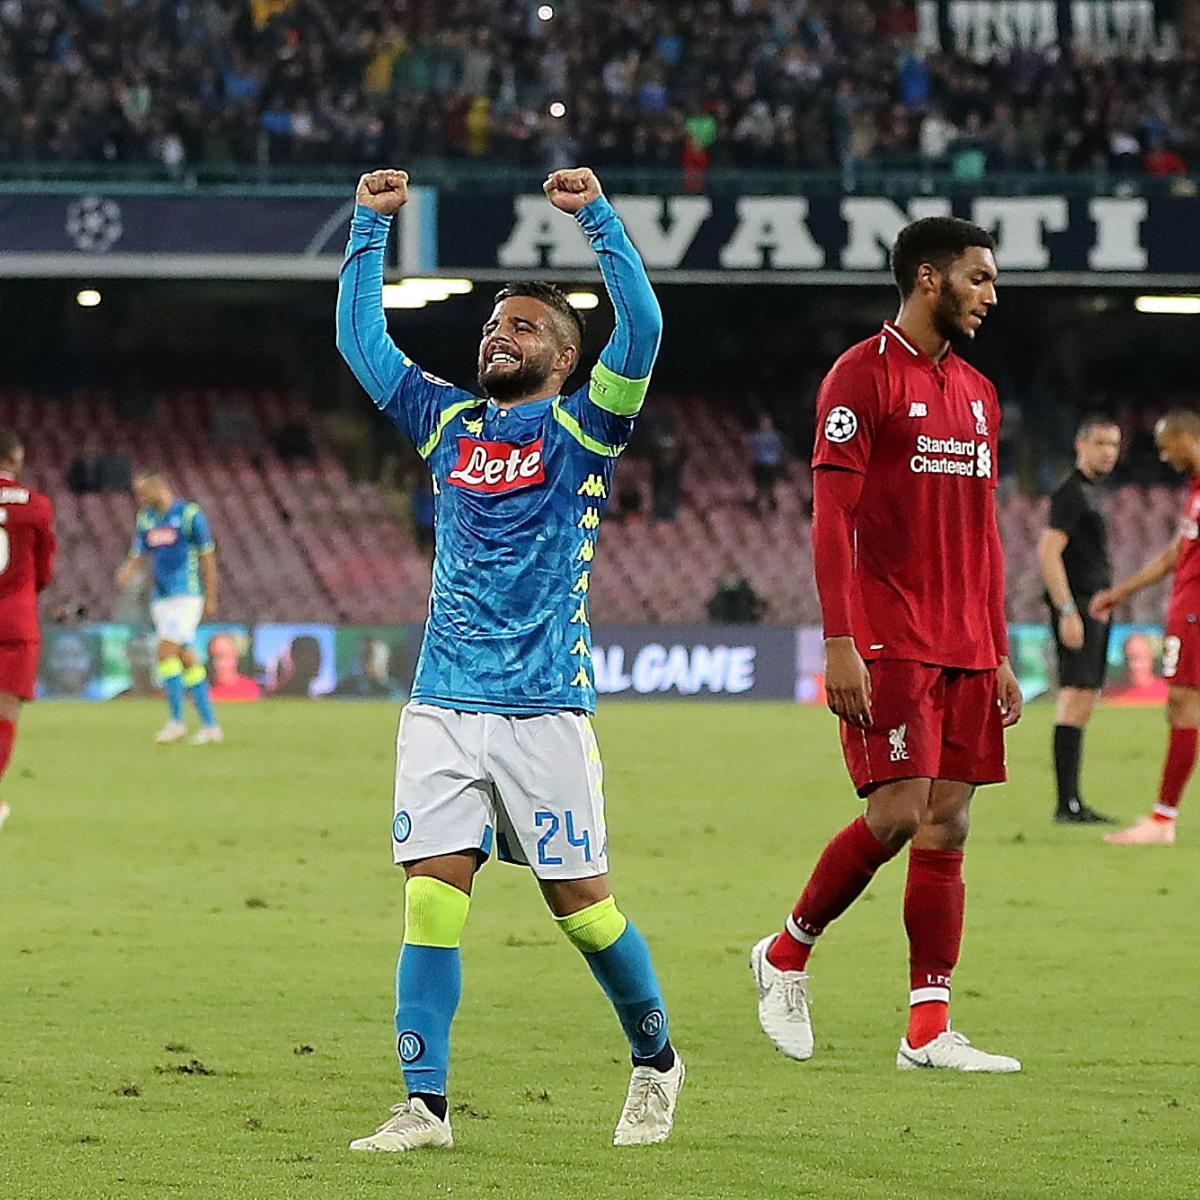 Champions League 2019 Live Stream Odds For Tuesday S: Champions League 2018: Odds, Live Stream, TV Schedule For